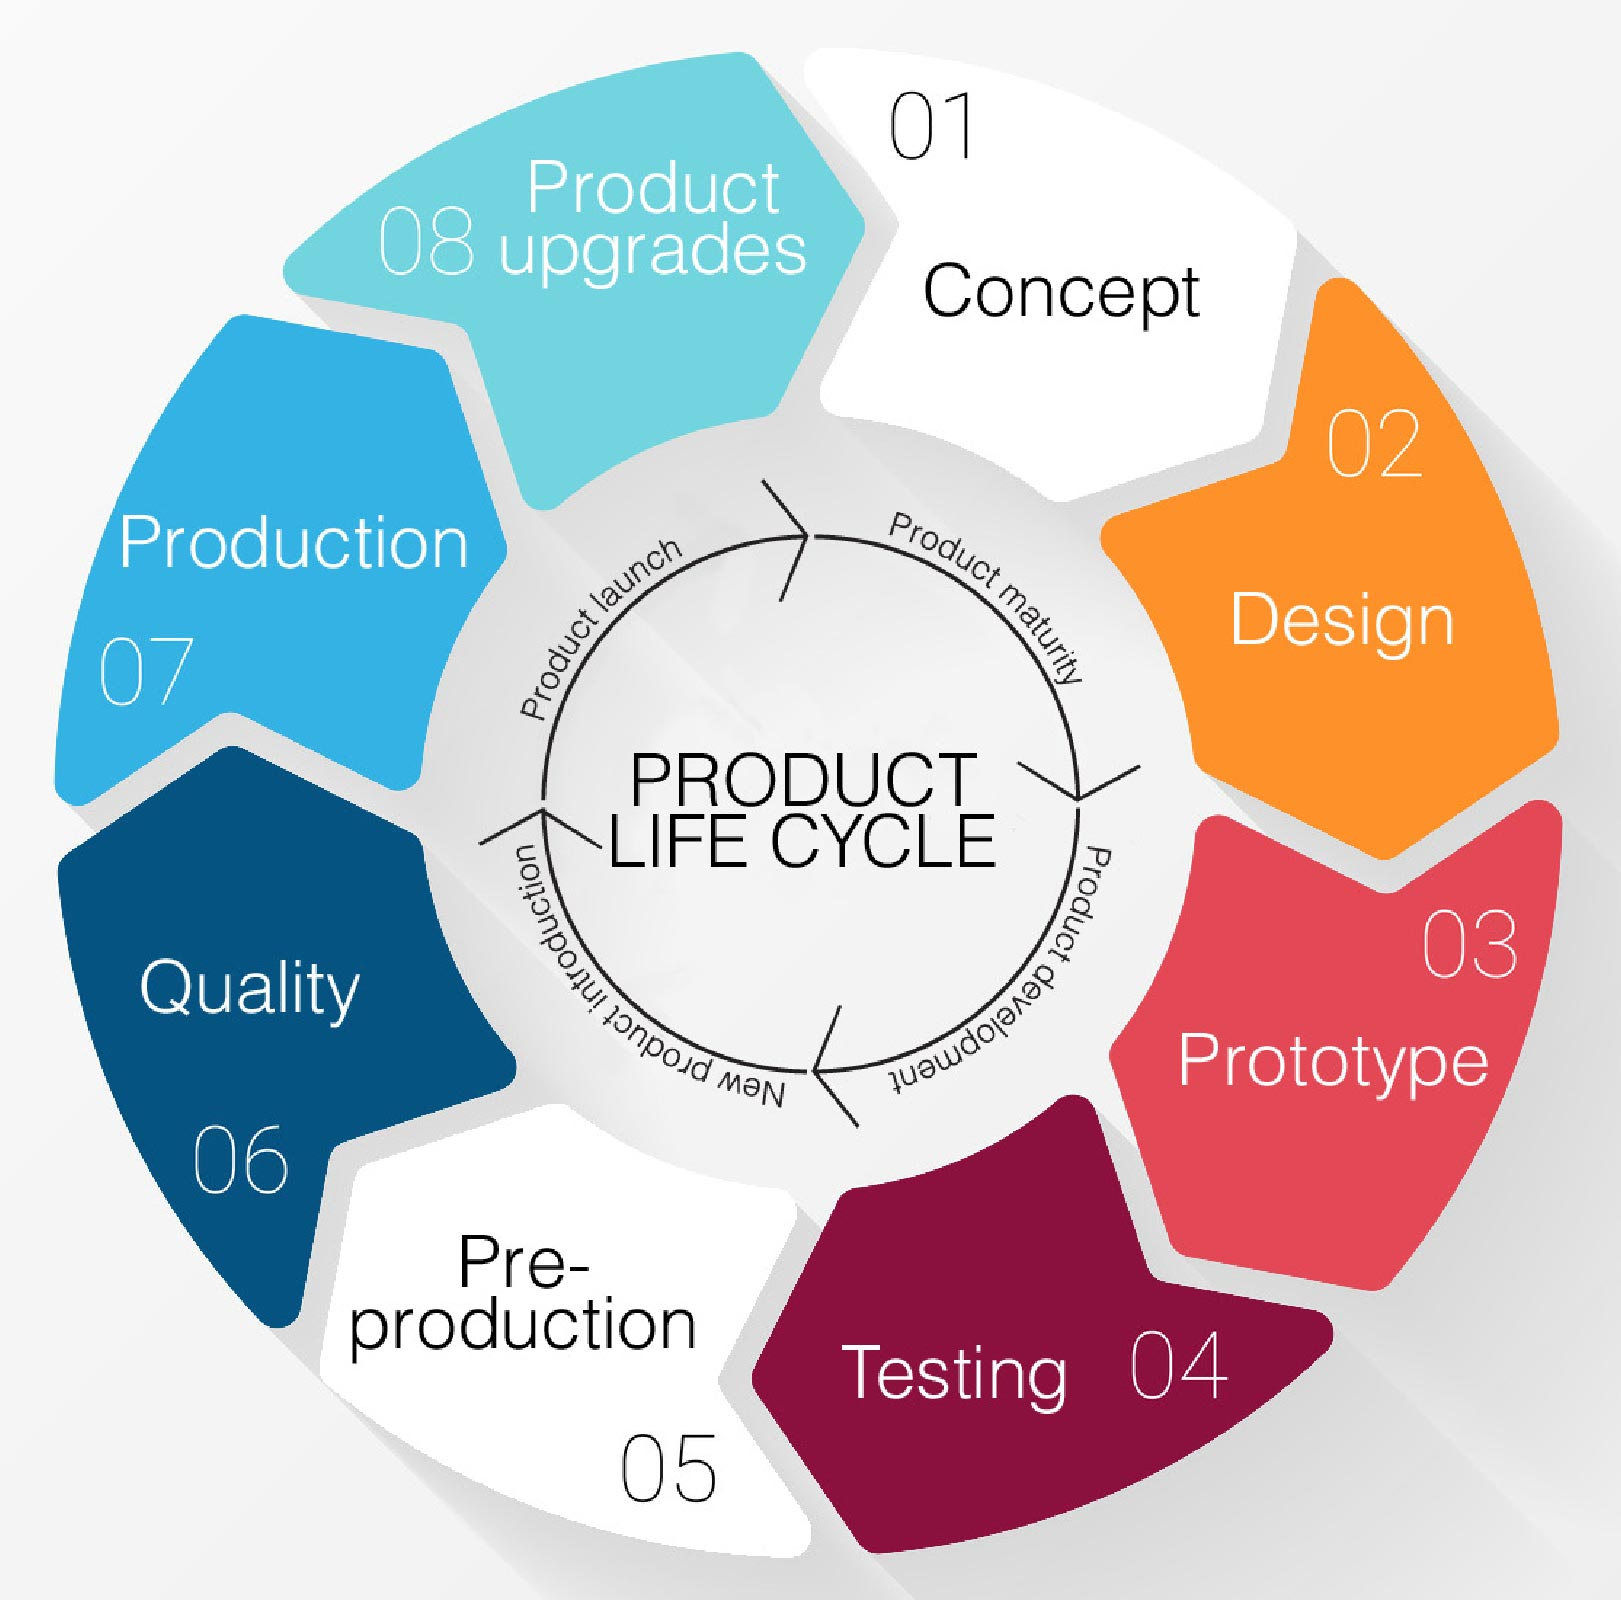 New product introduction for Product service design